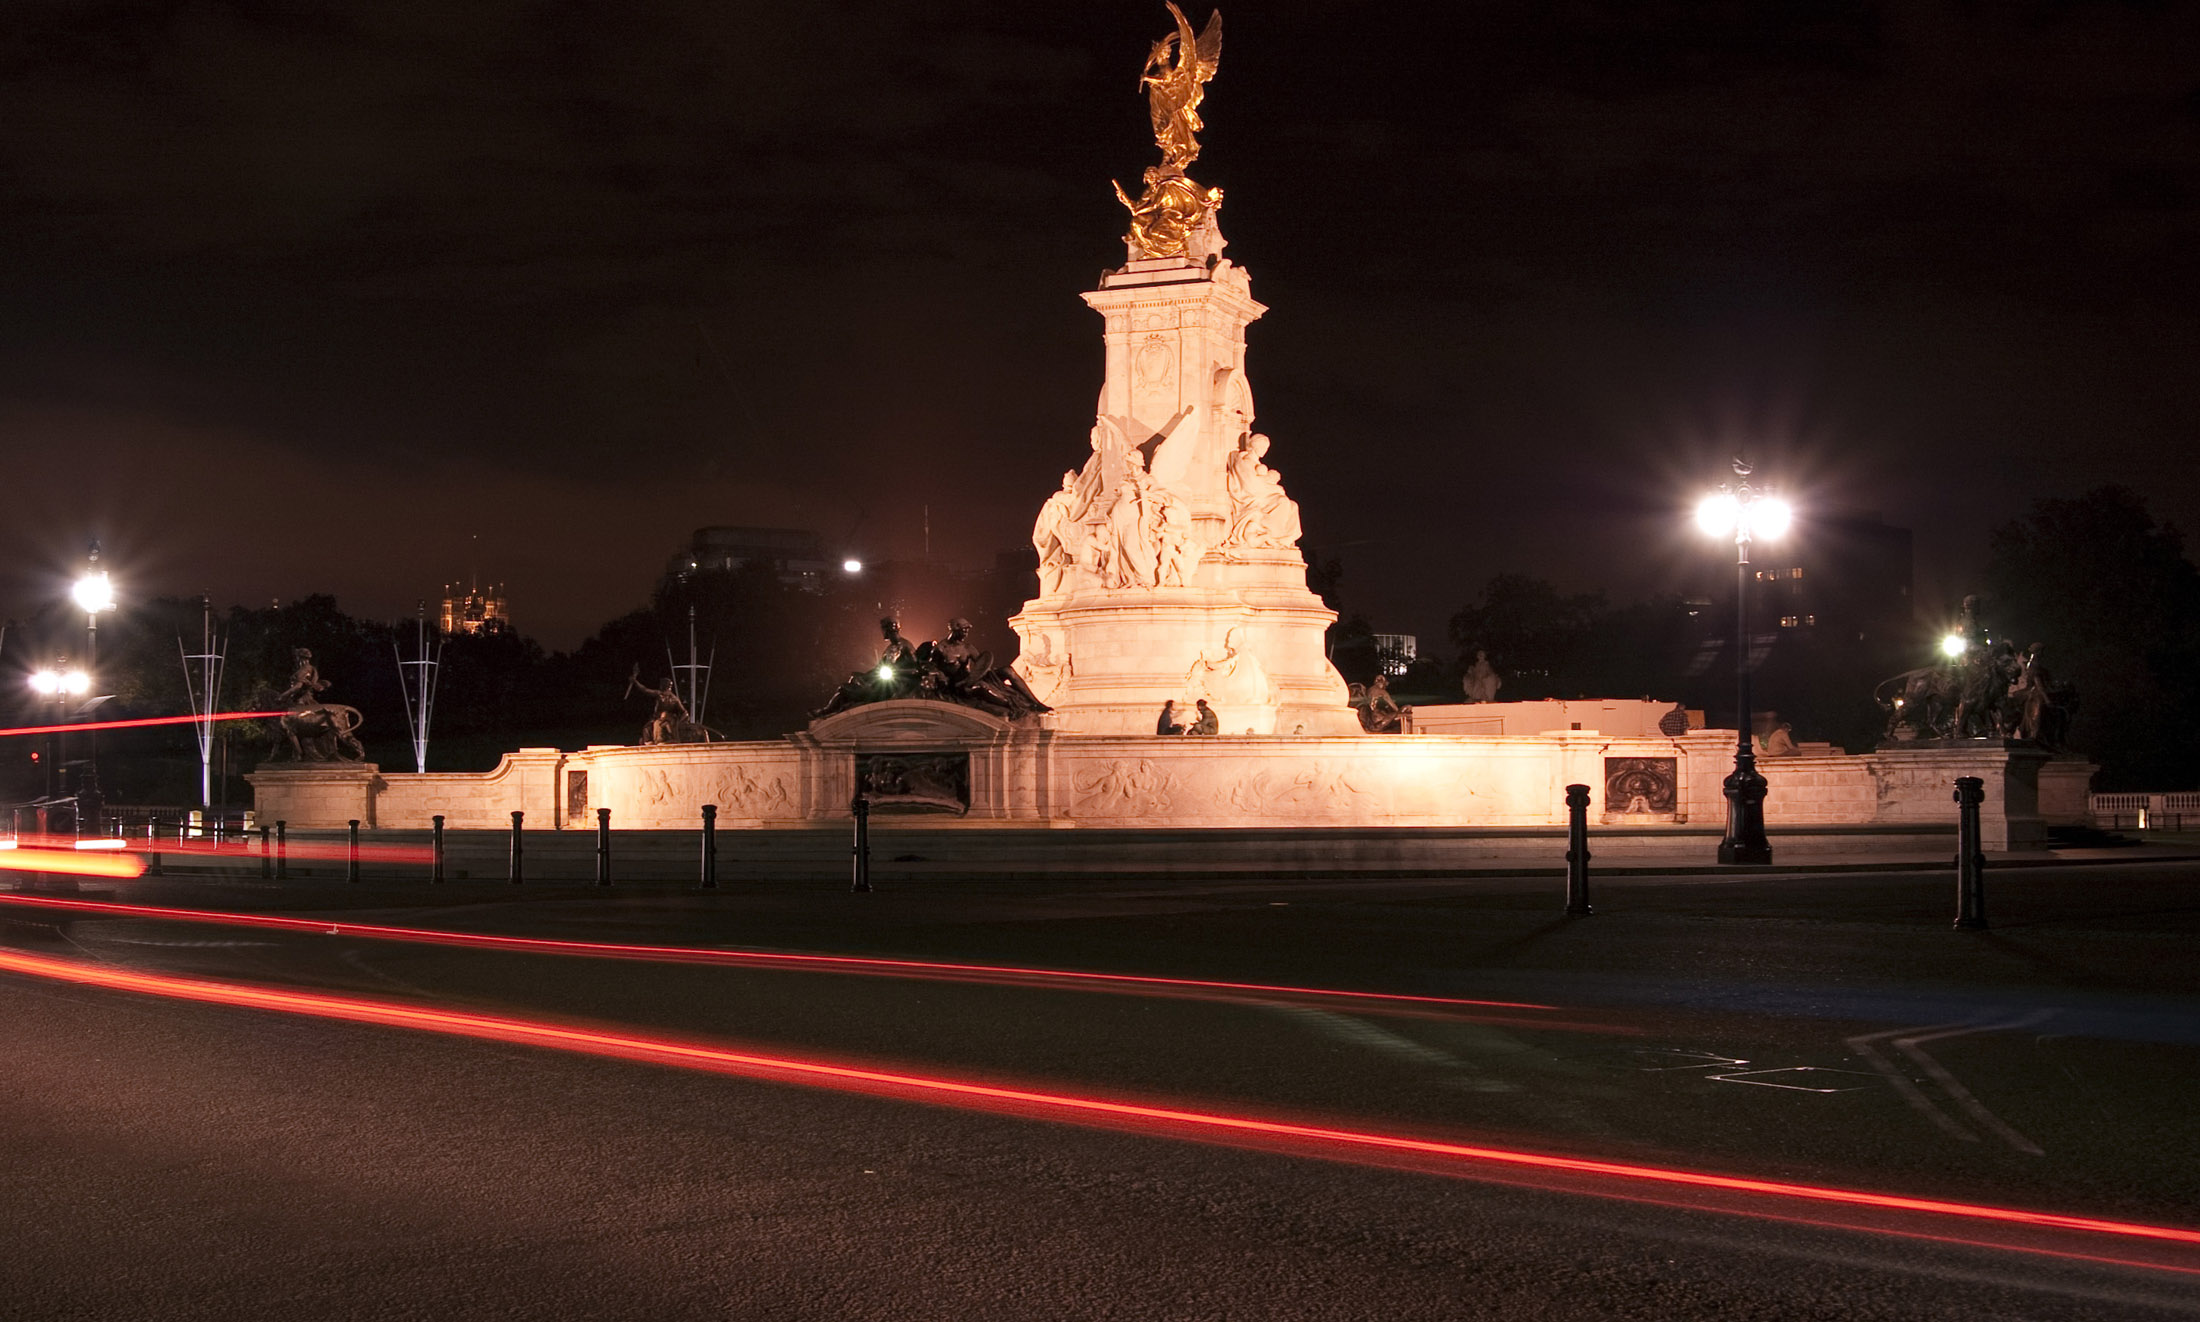 a night time view of the victoria memorial with gold statue of eros on top, located at the front of buckingham palace